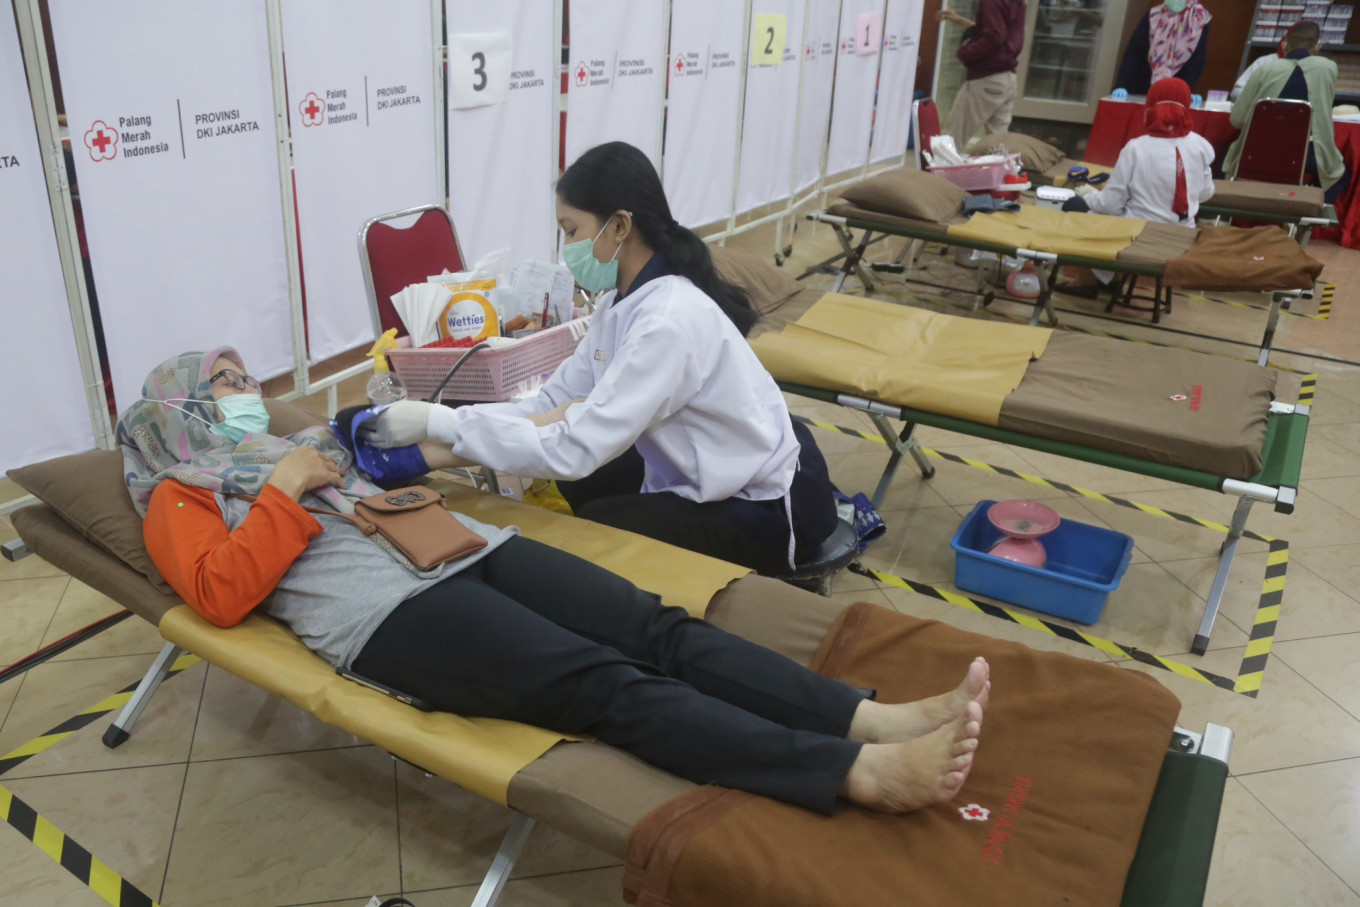 COVID-19: Medan Red Cross reports blood shortage, calls for donations